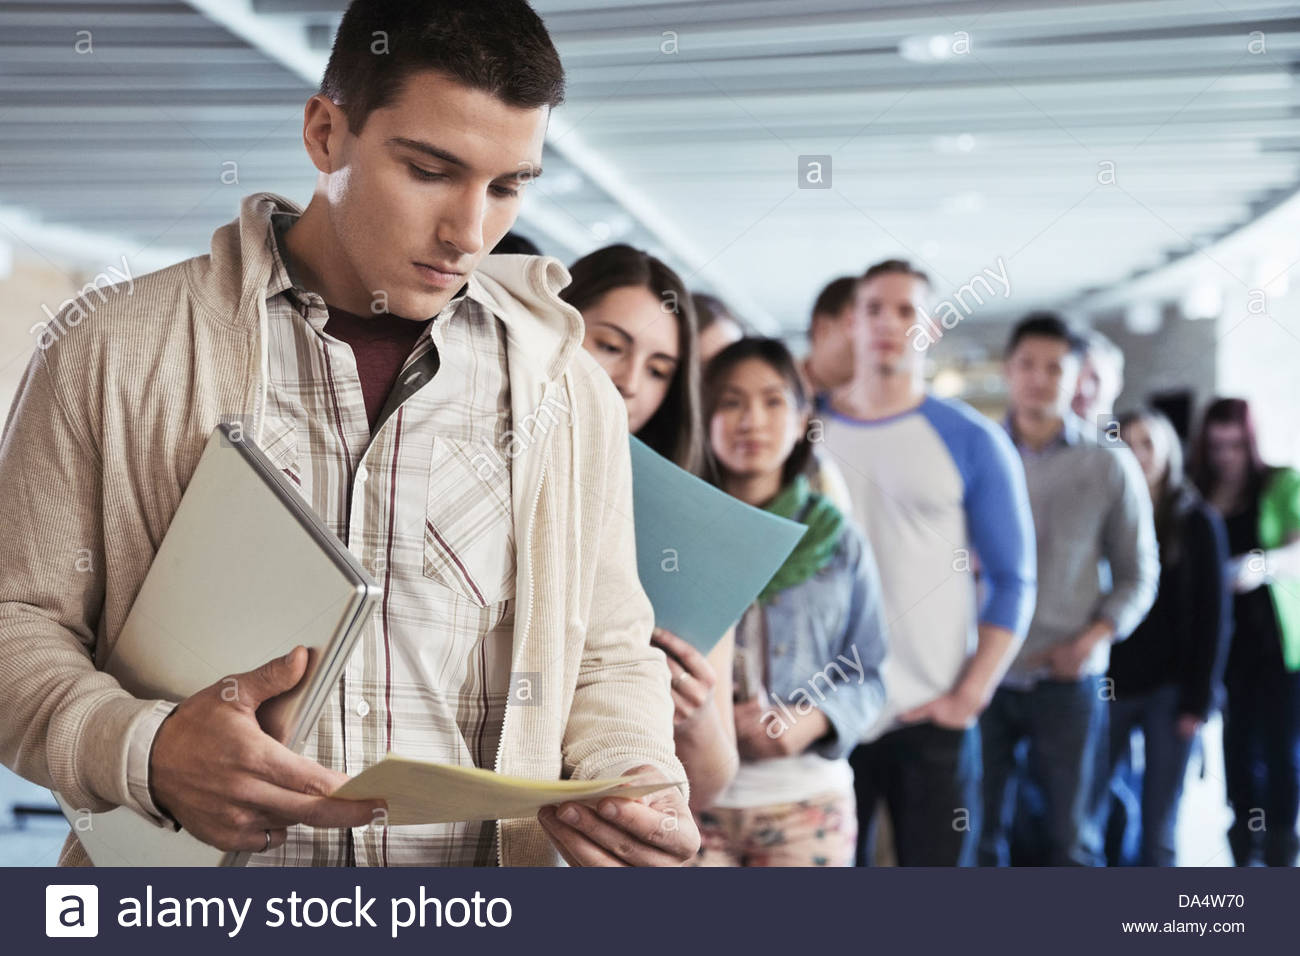 Large group of students standing in line at college campus - Stock Image